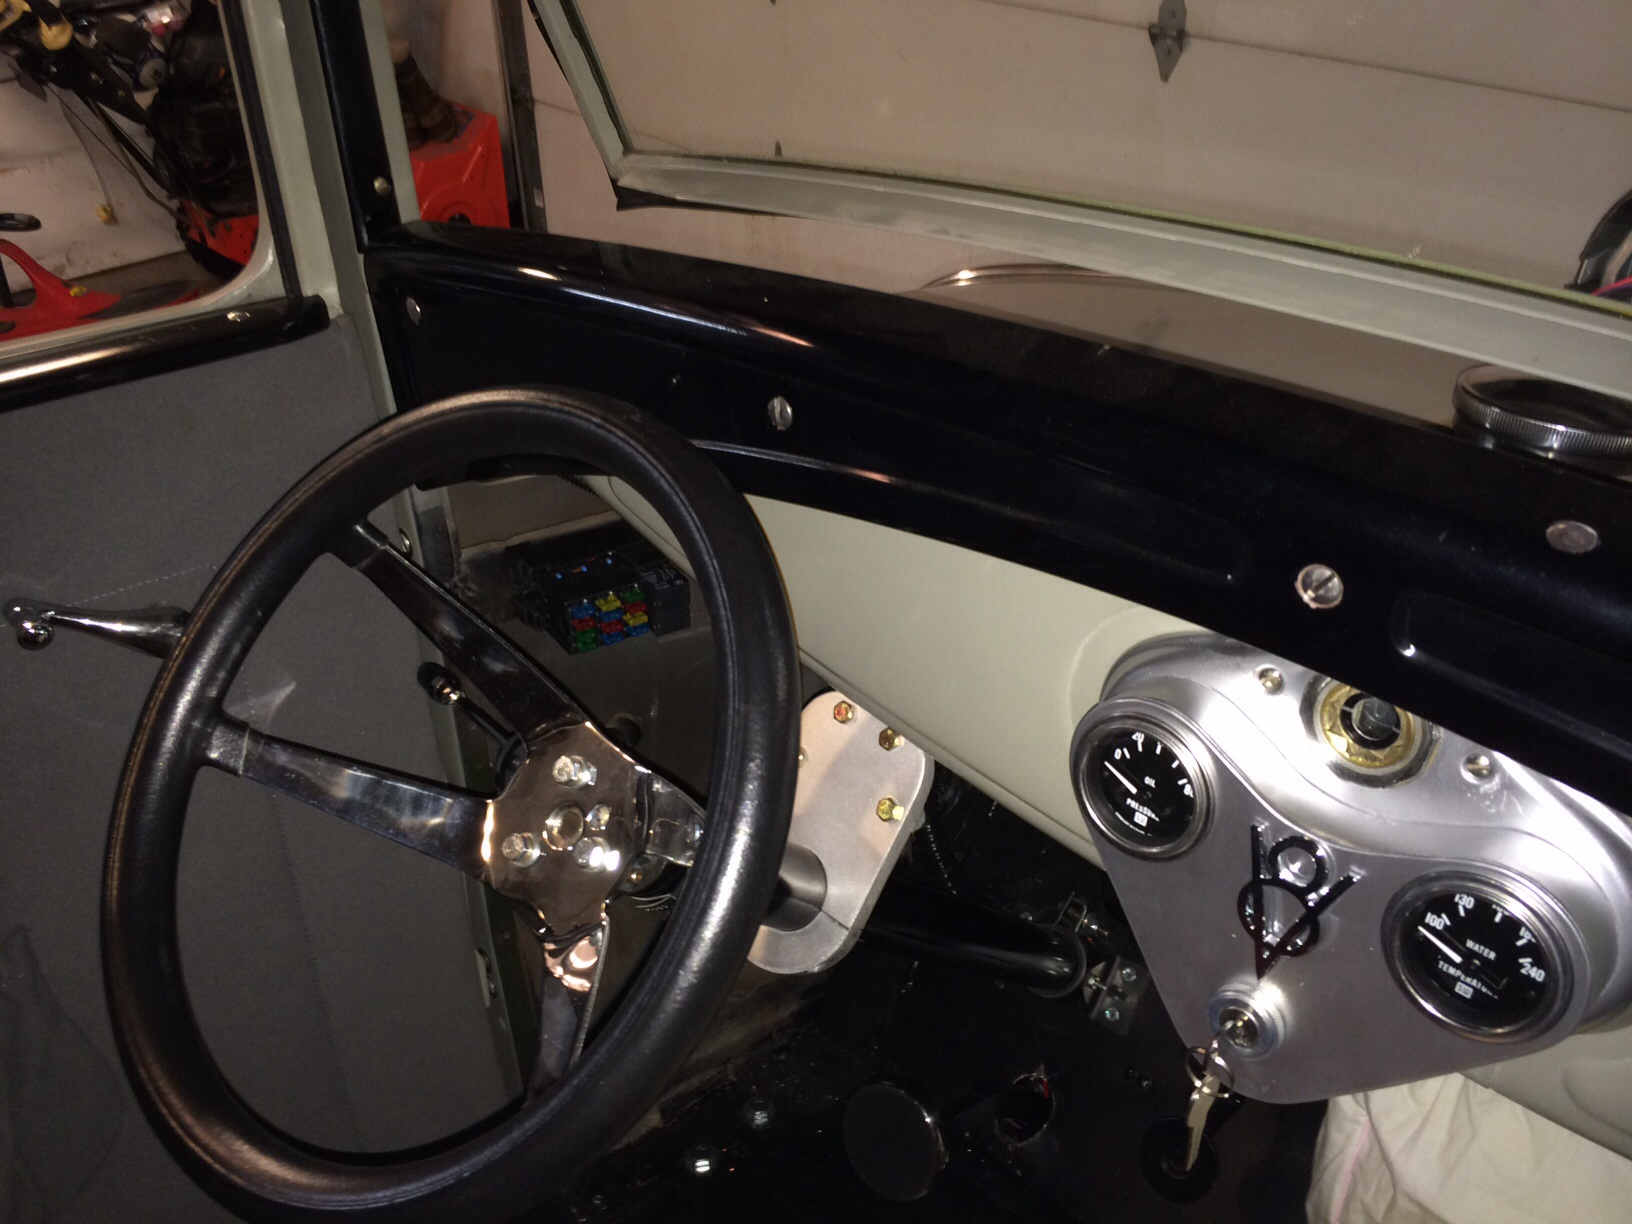 Technical Model A Fuse Box Location The Hamb Car Vent Mount Image